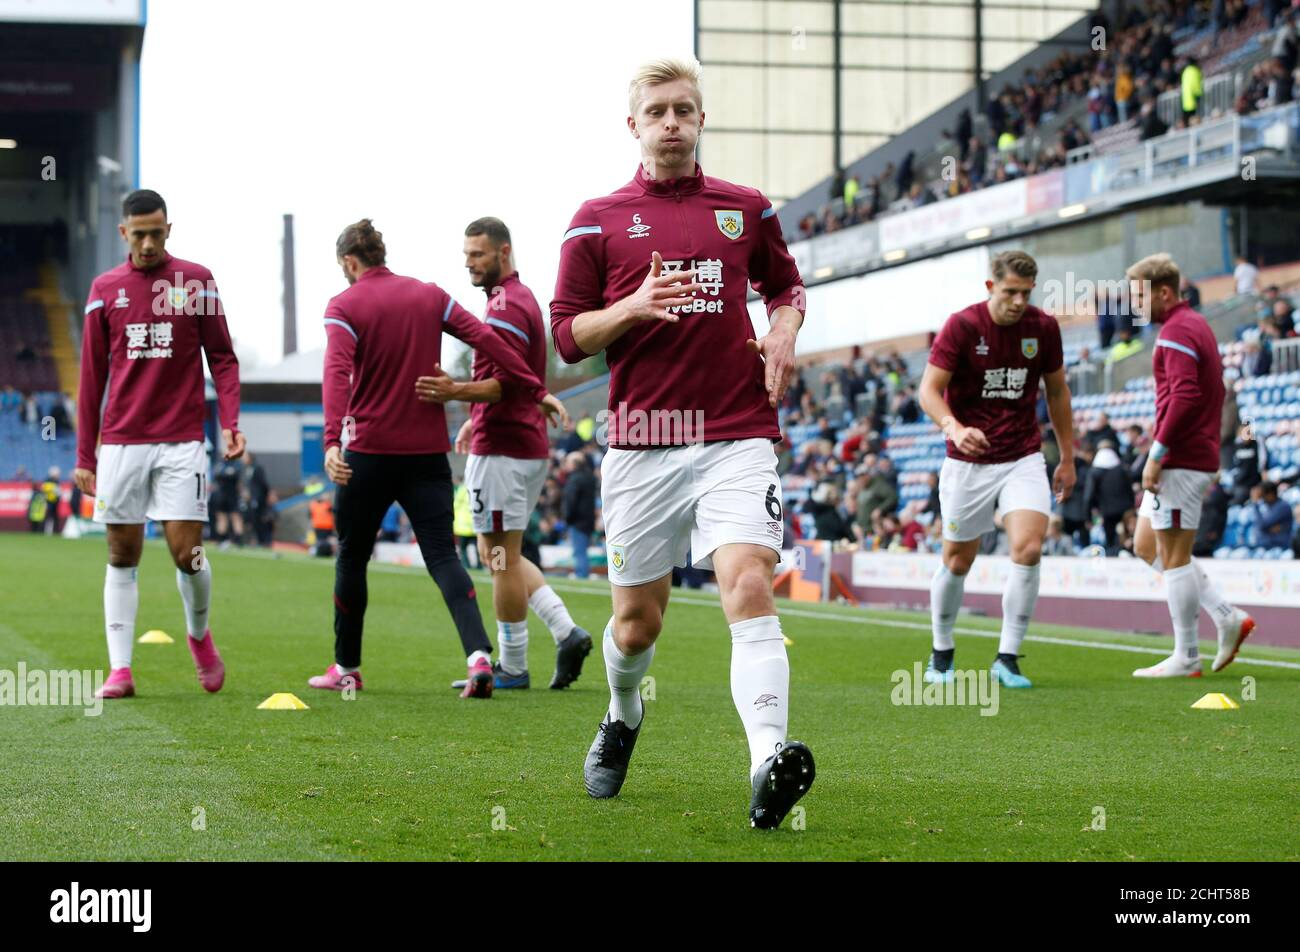 Soccer Football Premier League Burnley V Everton Turf Moor Burnley Britain October 5 2019 Burnley S Ben Mee During The Warm Up Before The Match Reuters Andrew Yates Editorial Use